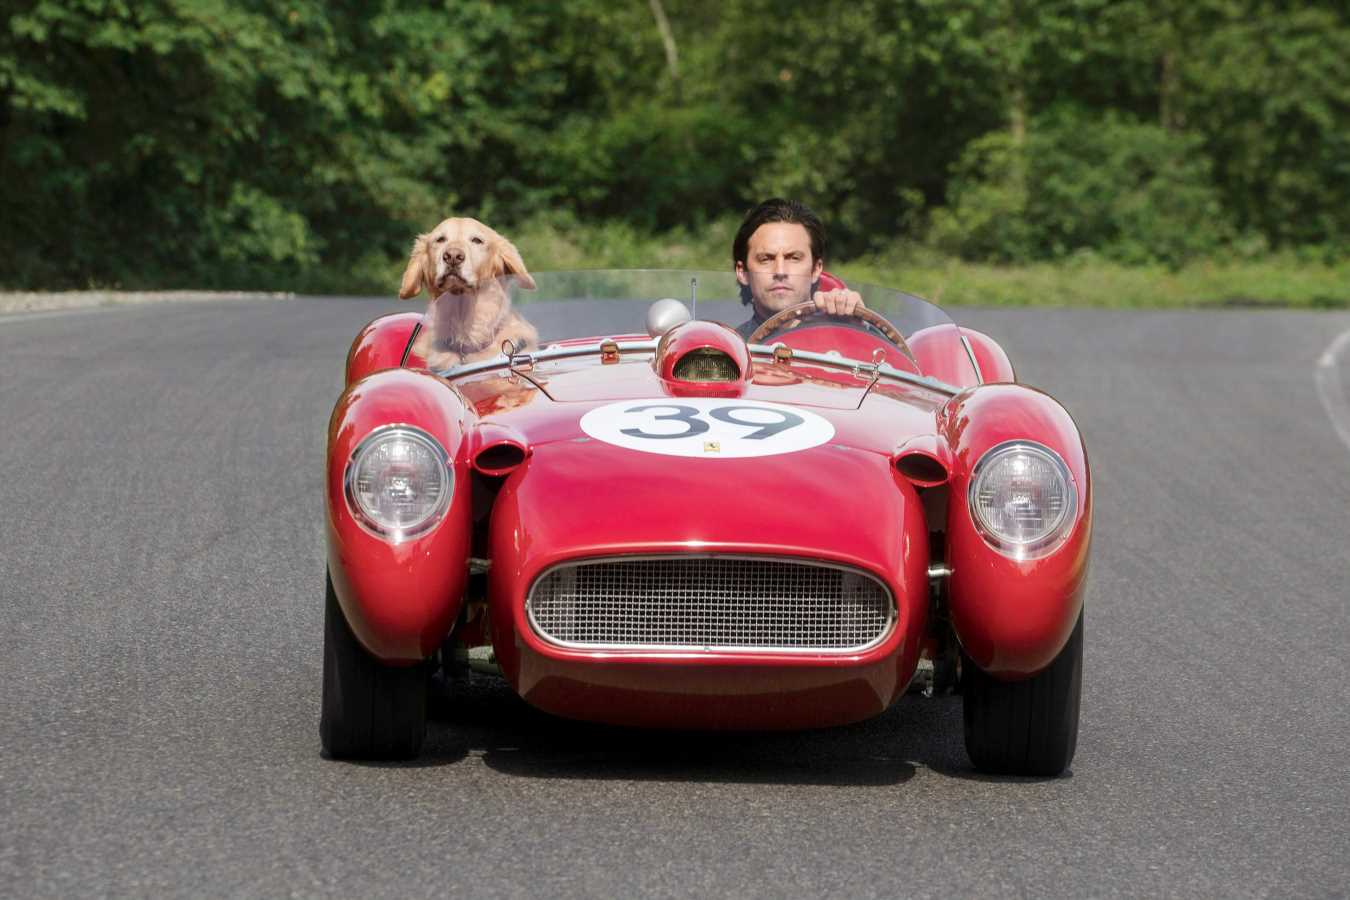 Milo Ventimiglia wanted to bring Art of Racing in the Rain dog home